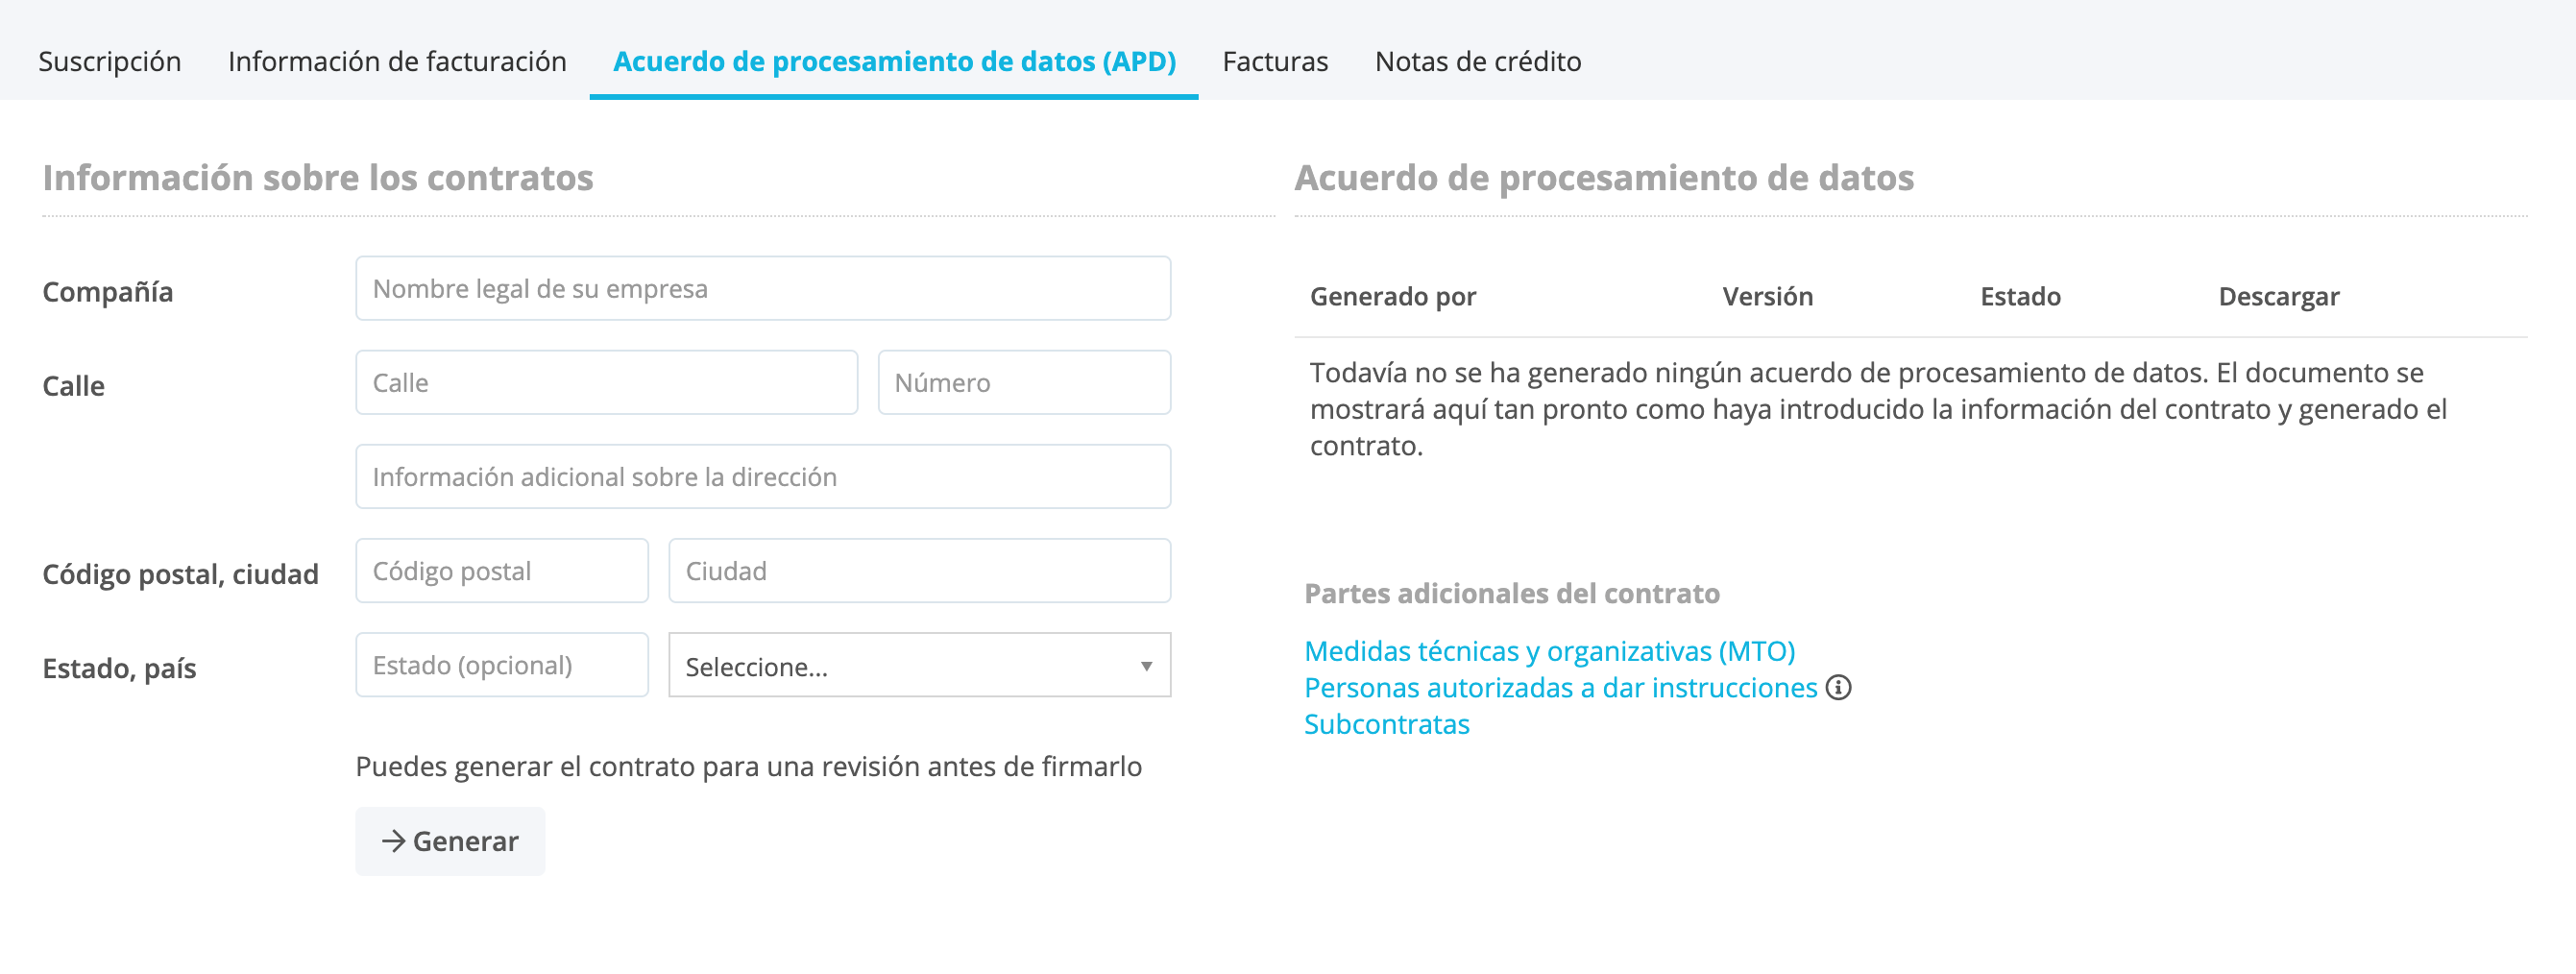 data-processing-agreement-contract_es.png